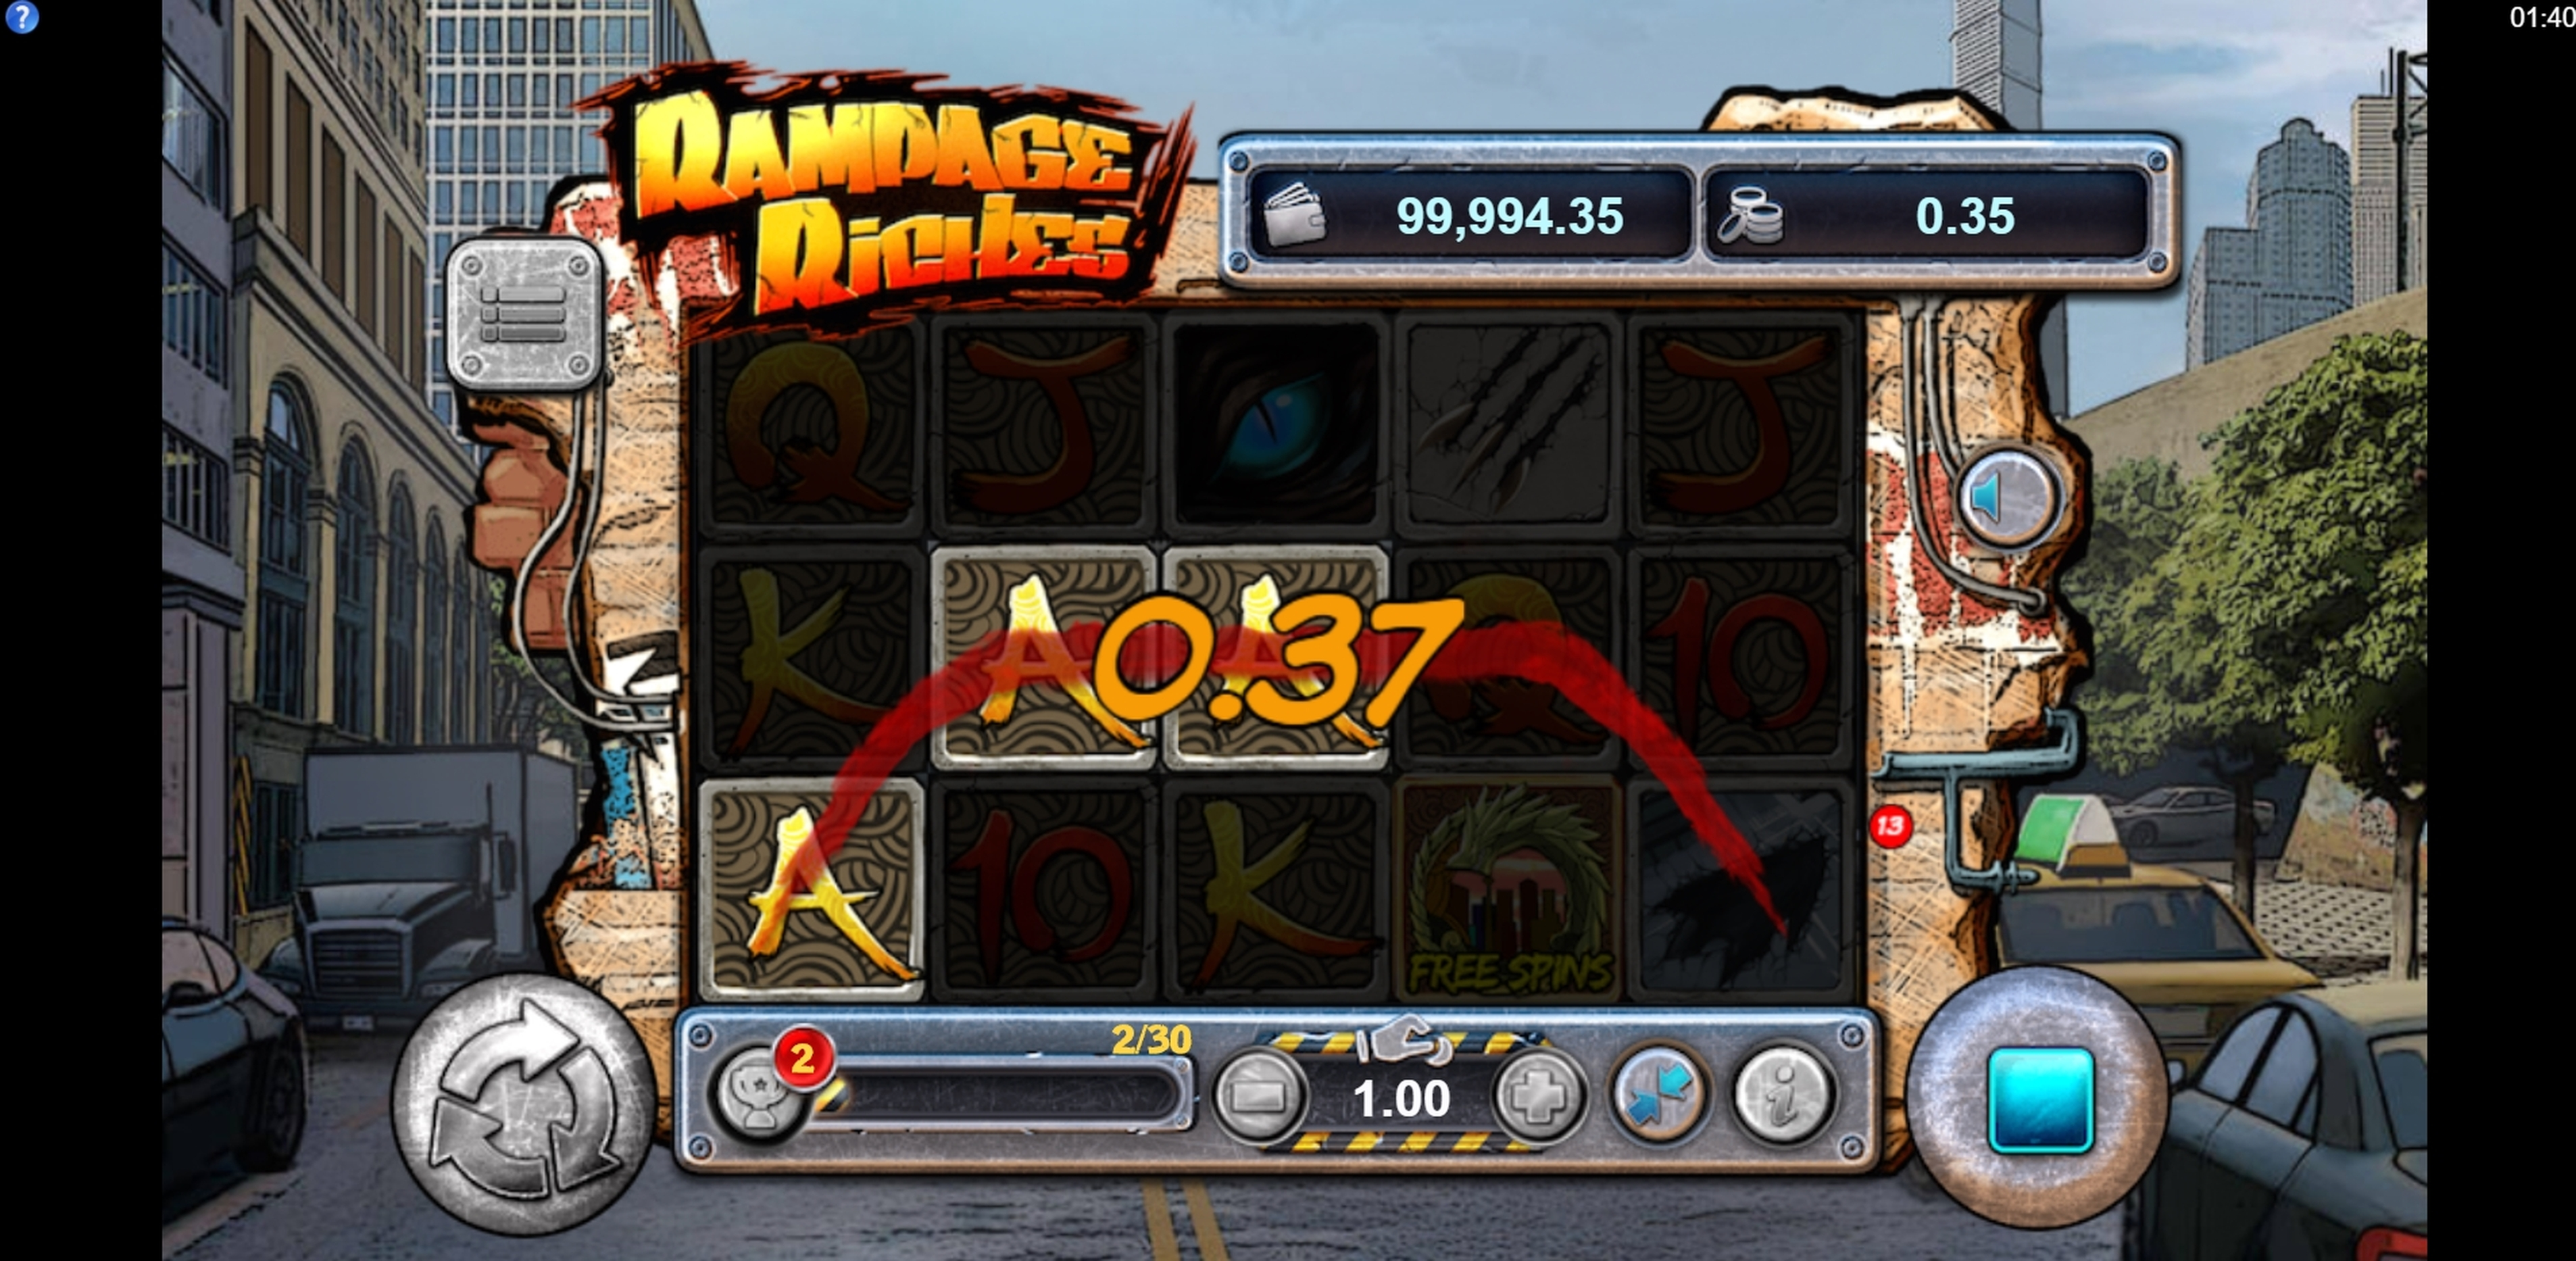 Win Money in King of Kaiju: Rampage Riches Free Slot Game by Lost World Games